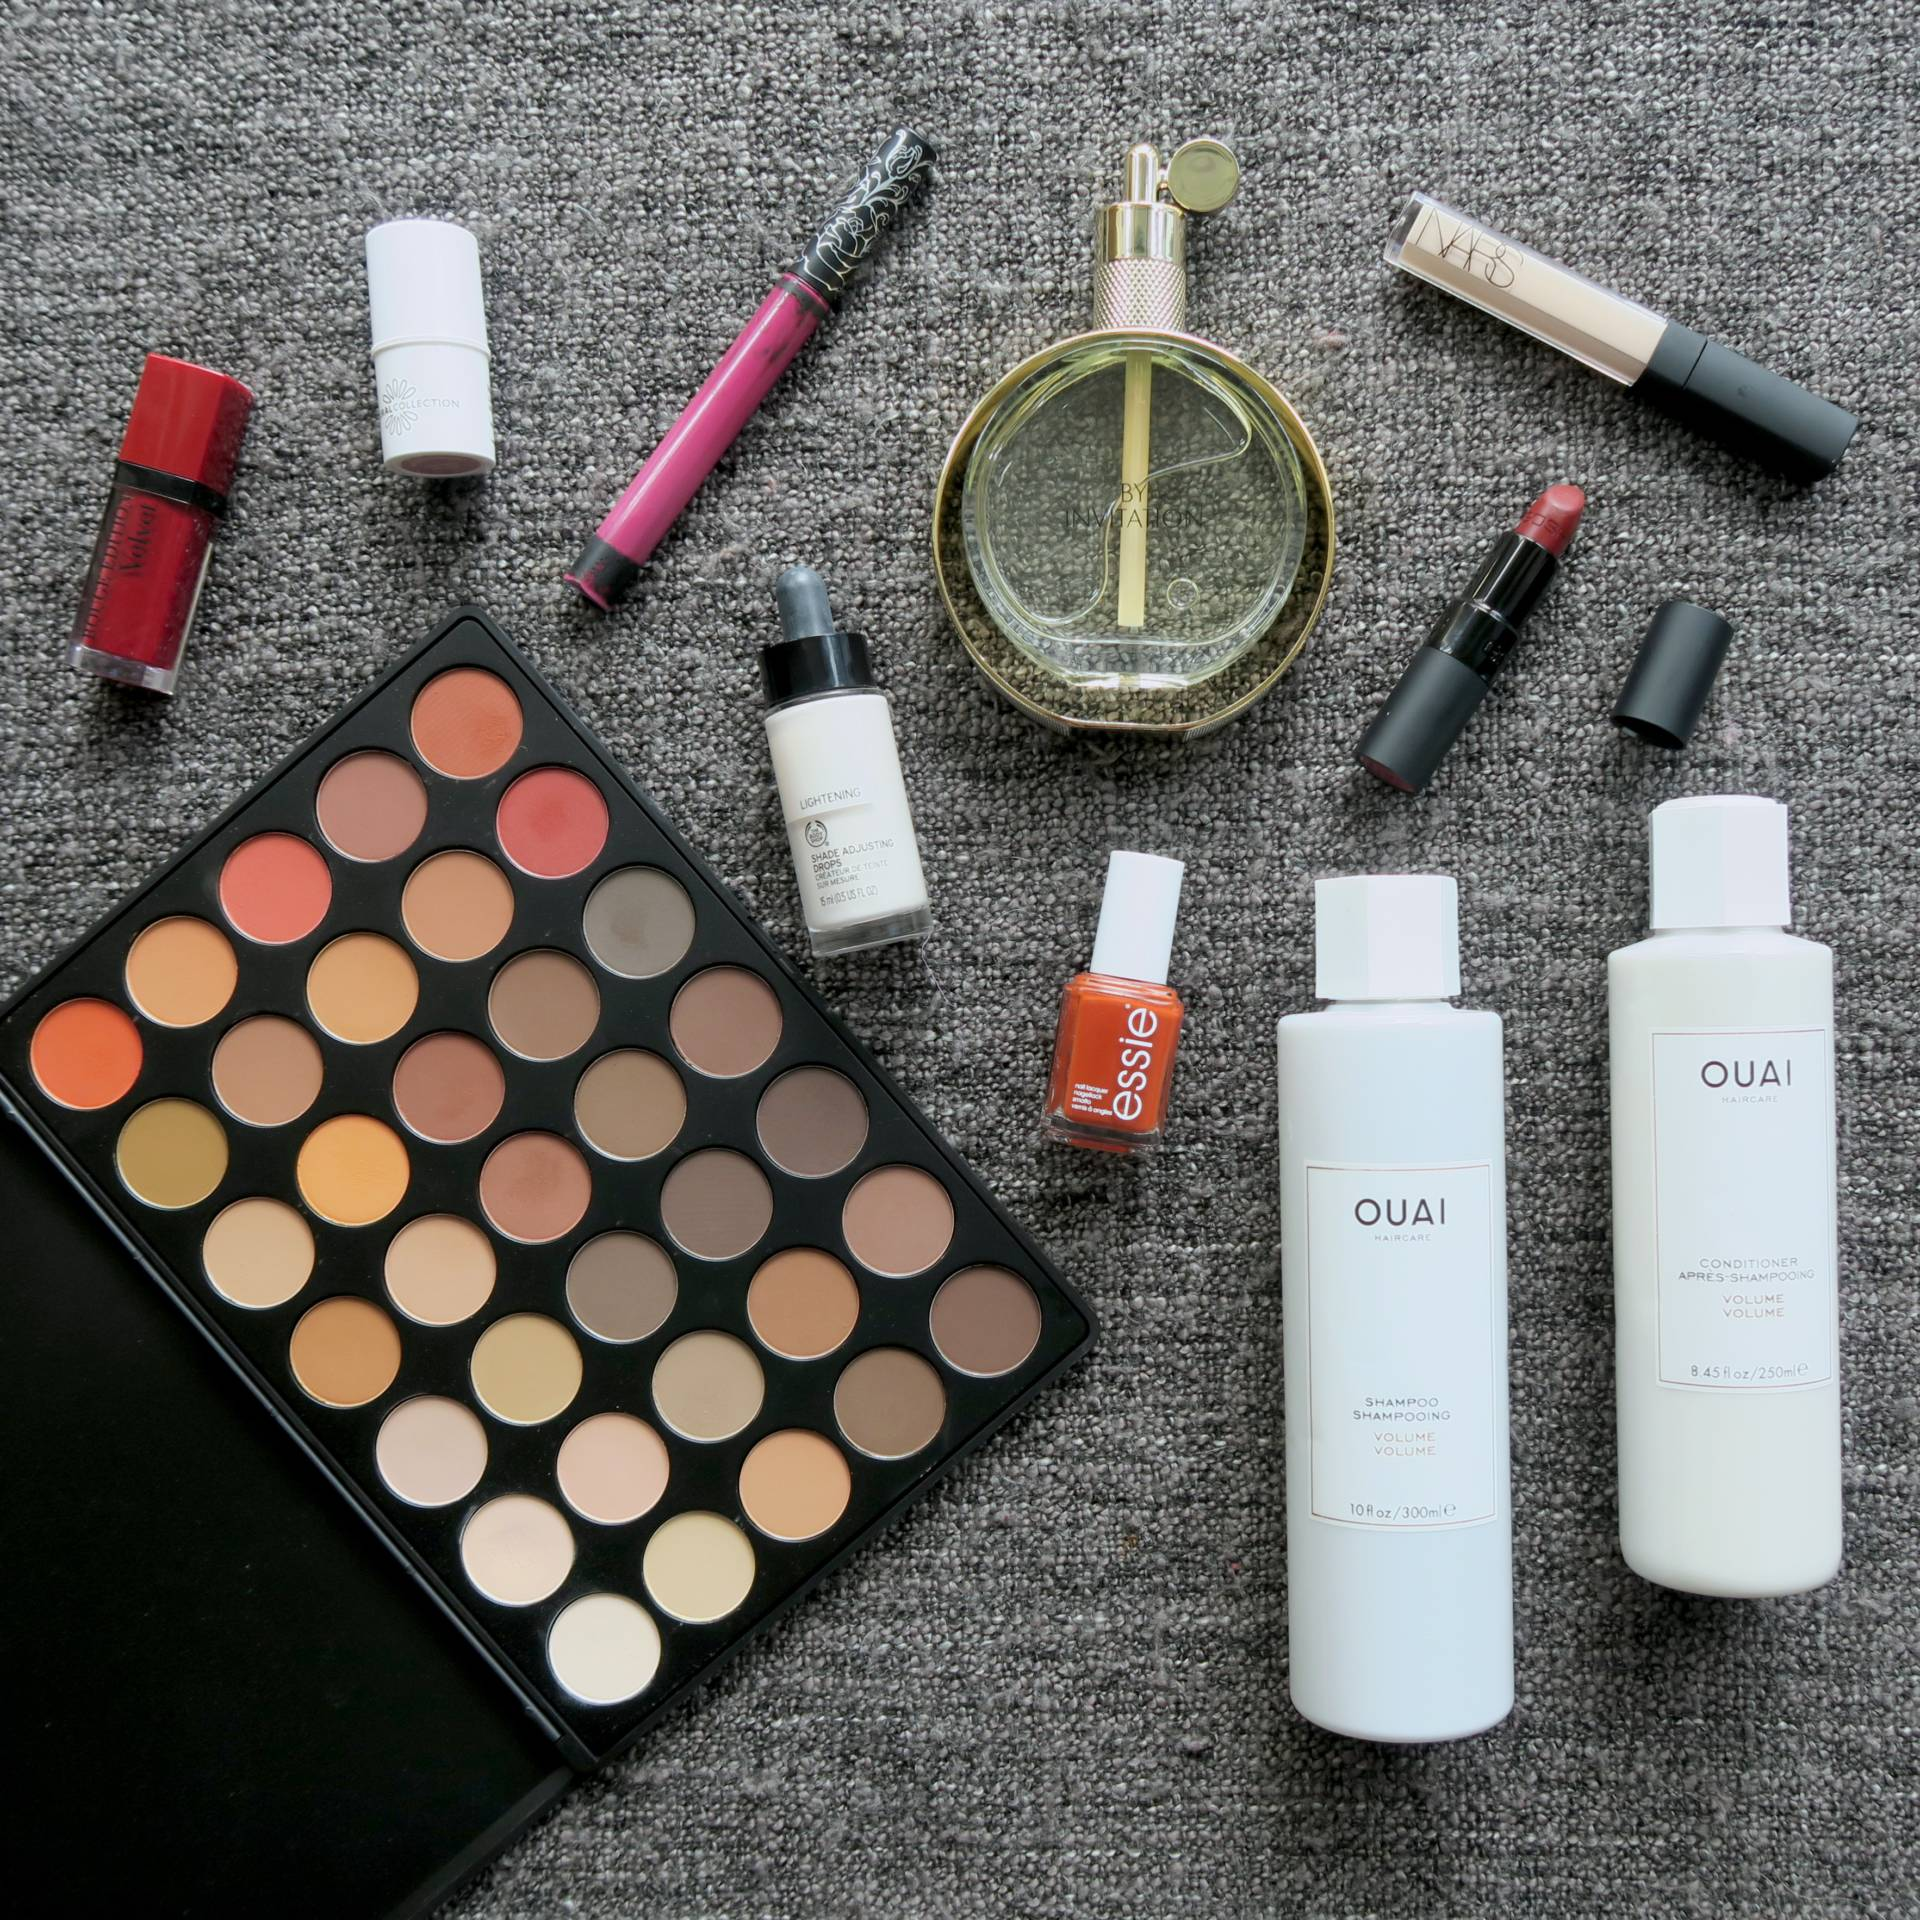 Current Favourites // Talonted Lex. Feat. essie, Ouai, Morphe, Bourjois, Kat Von D, Natural Collection, The Body Shop, By Invitation fragrance, NARS, GOSH and TV recommendations